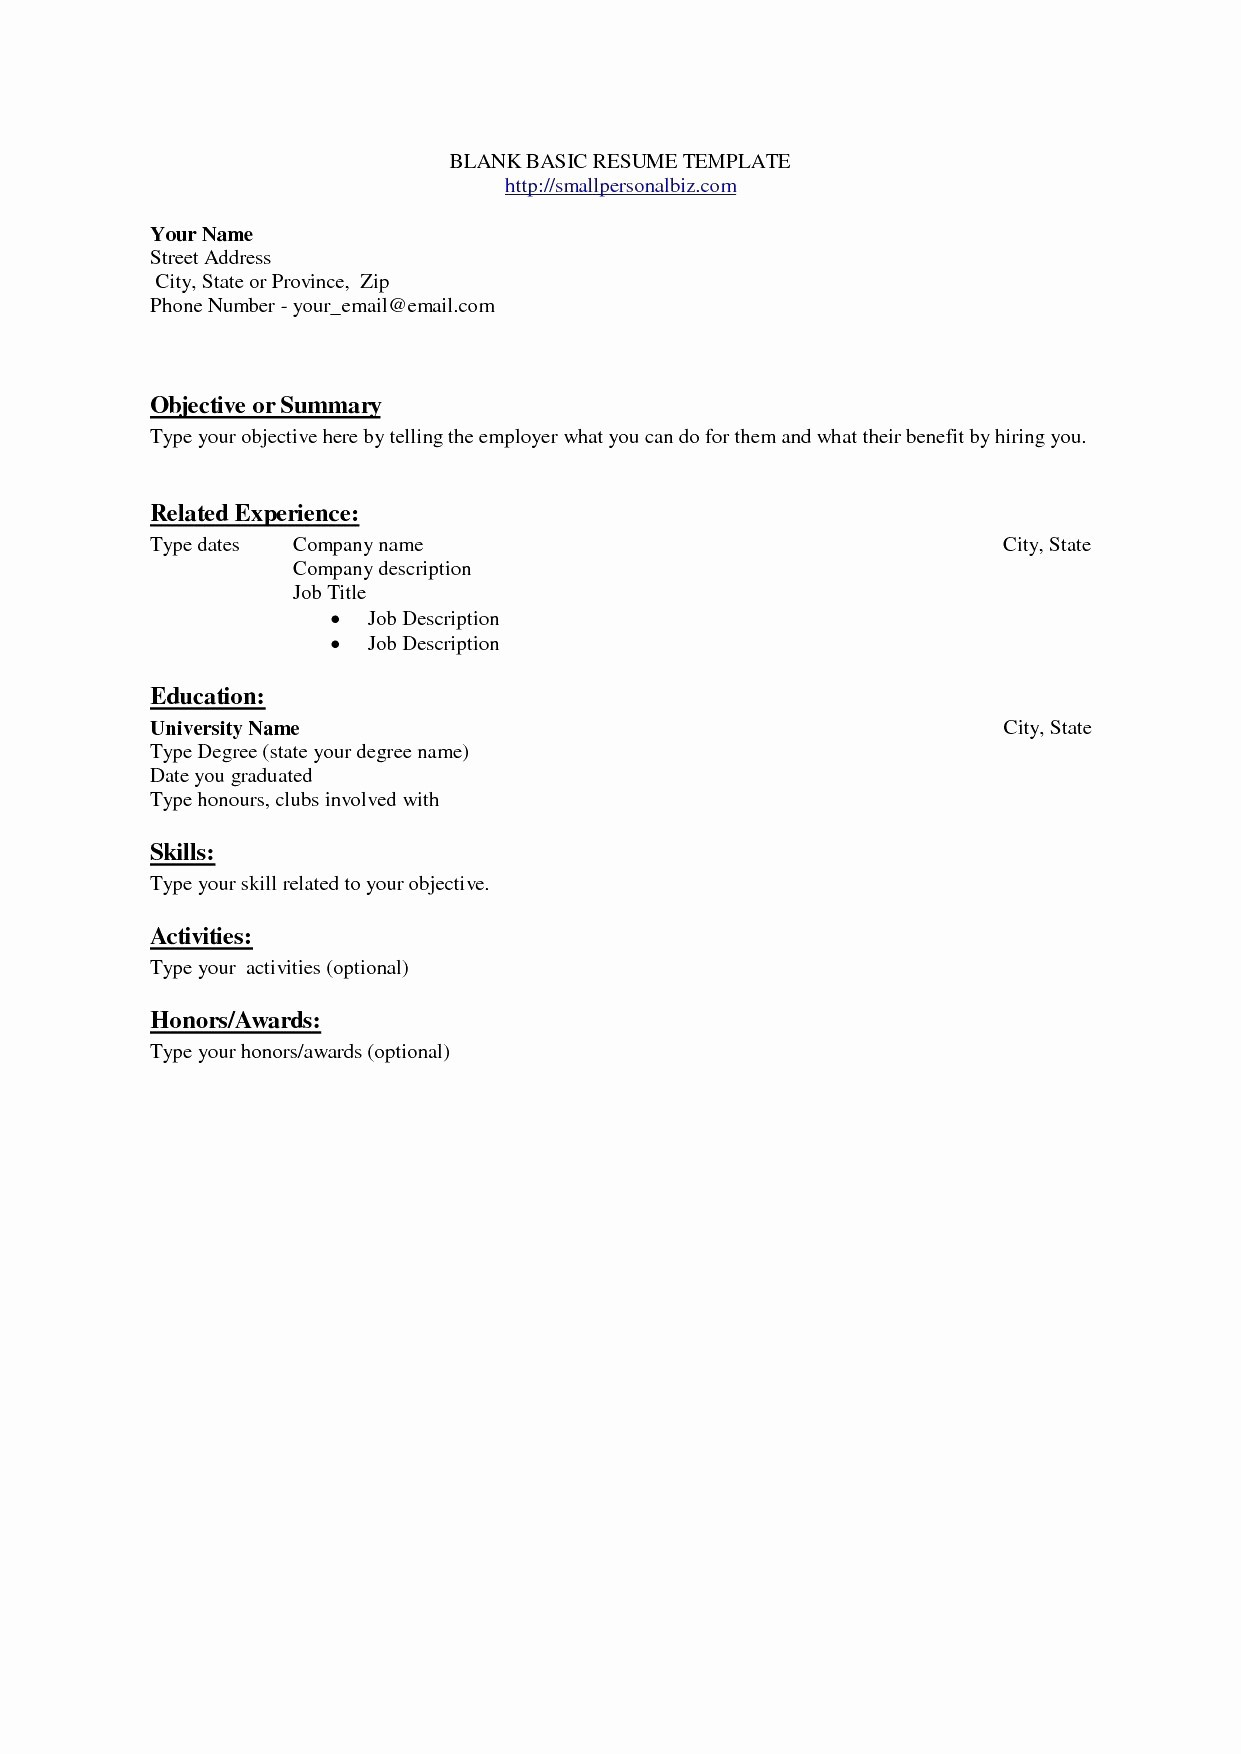 Tableau Developer Resume - Tableau Developer Resume